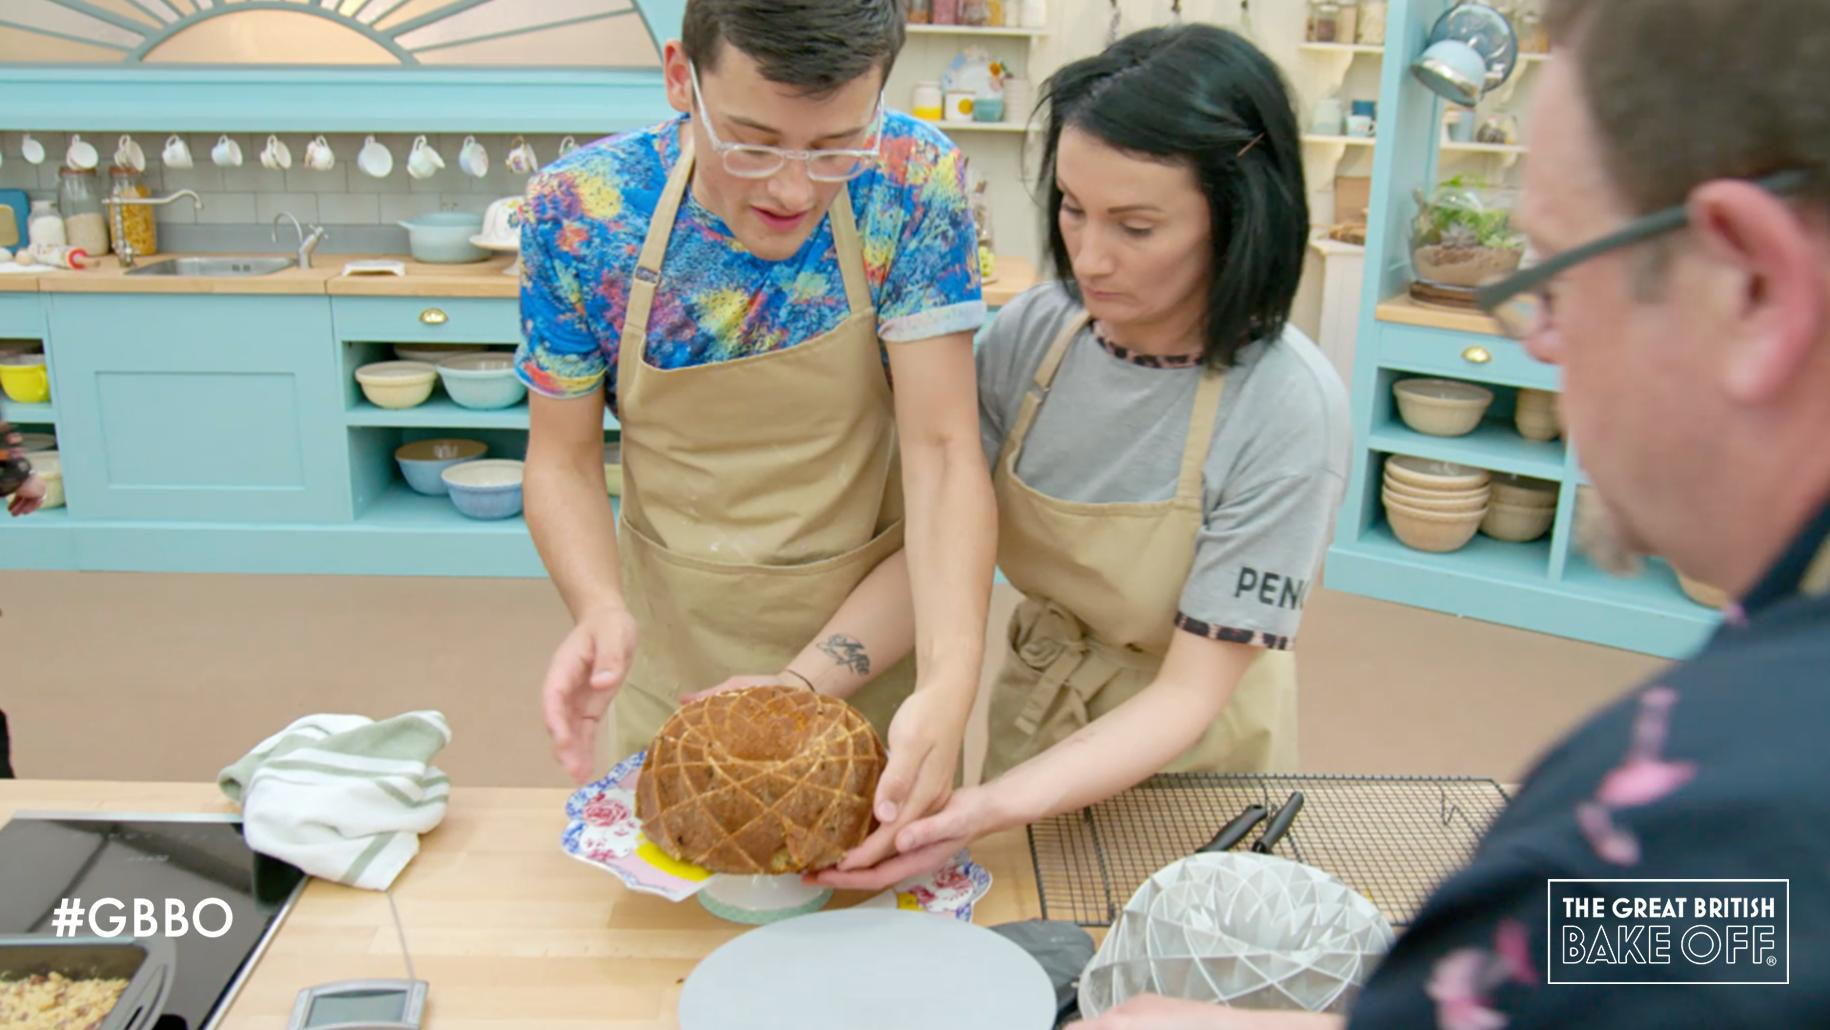 A contestant on the Great British Baking show helps another whose cake is about to fall off of a plate.